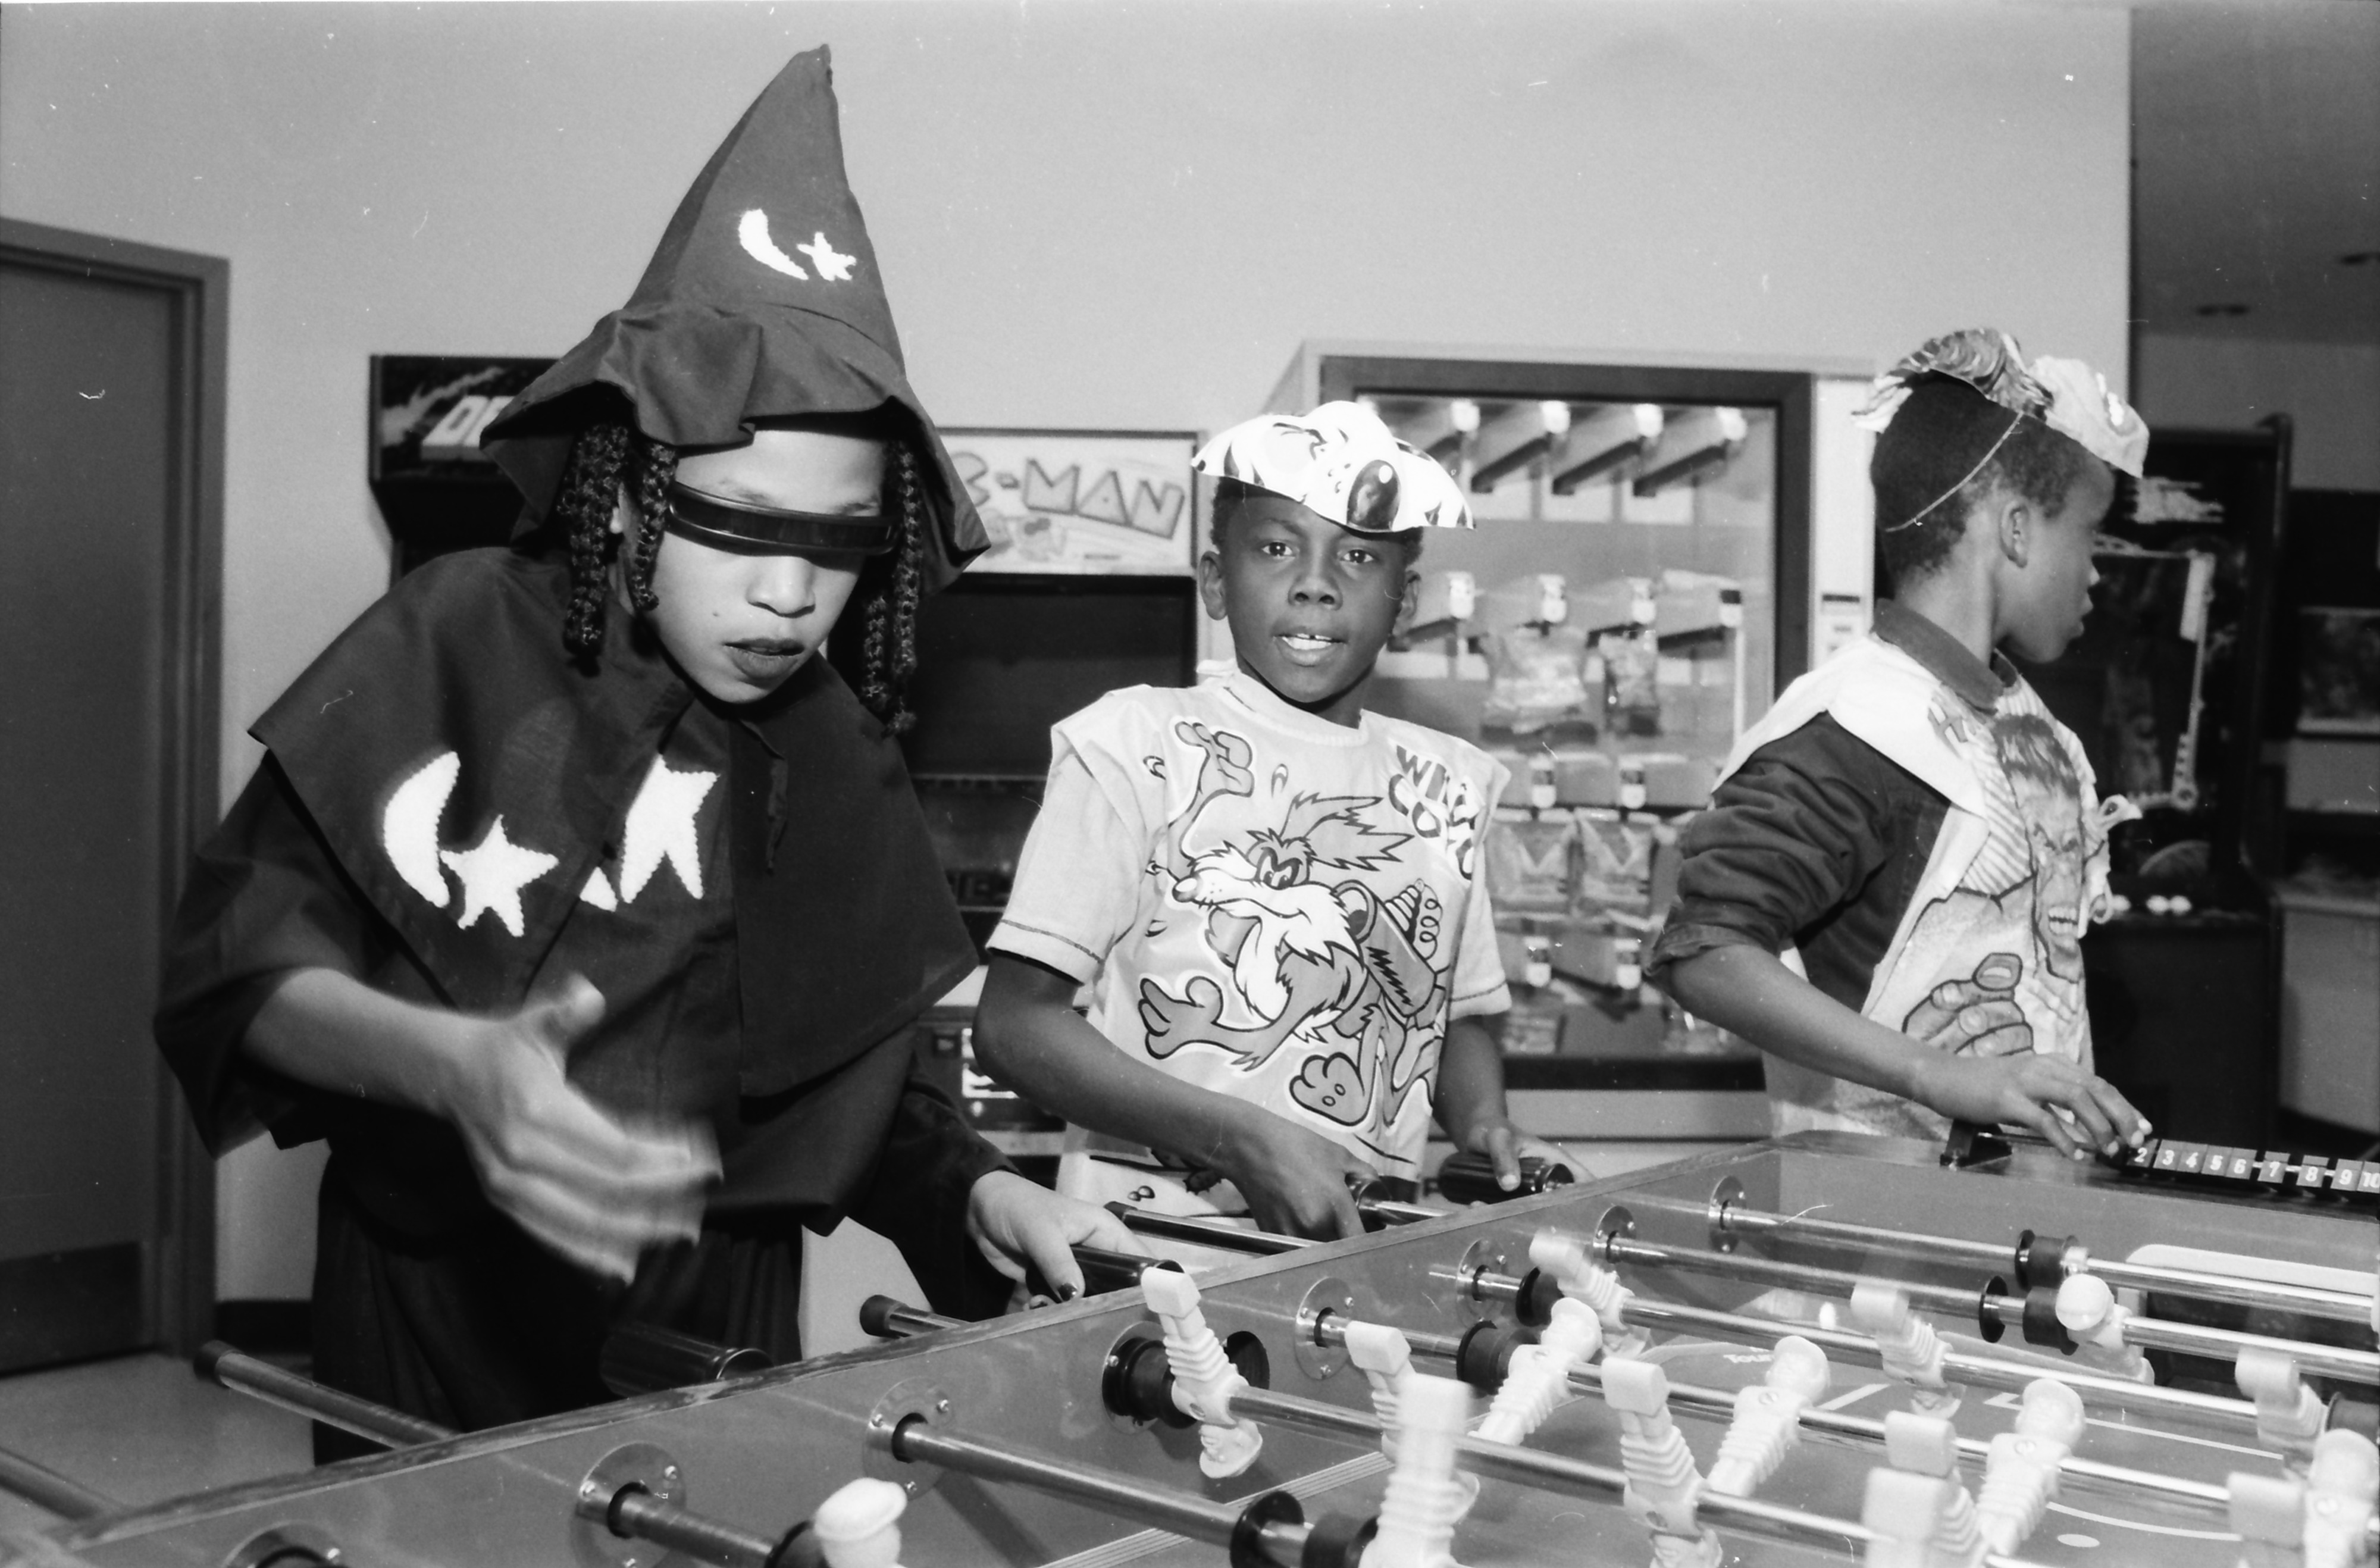 Playing Games at Halloween Party at Parkridge Community Center, October 1983 image